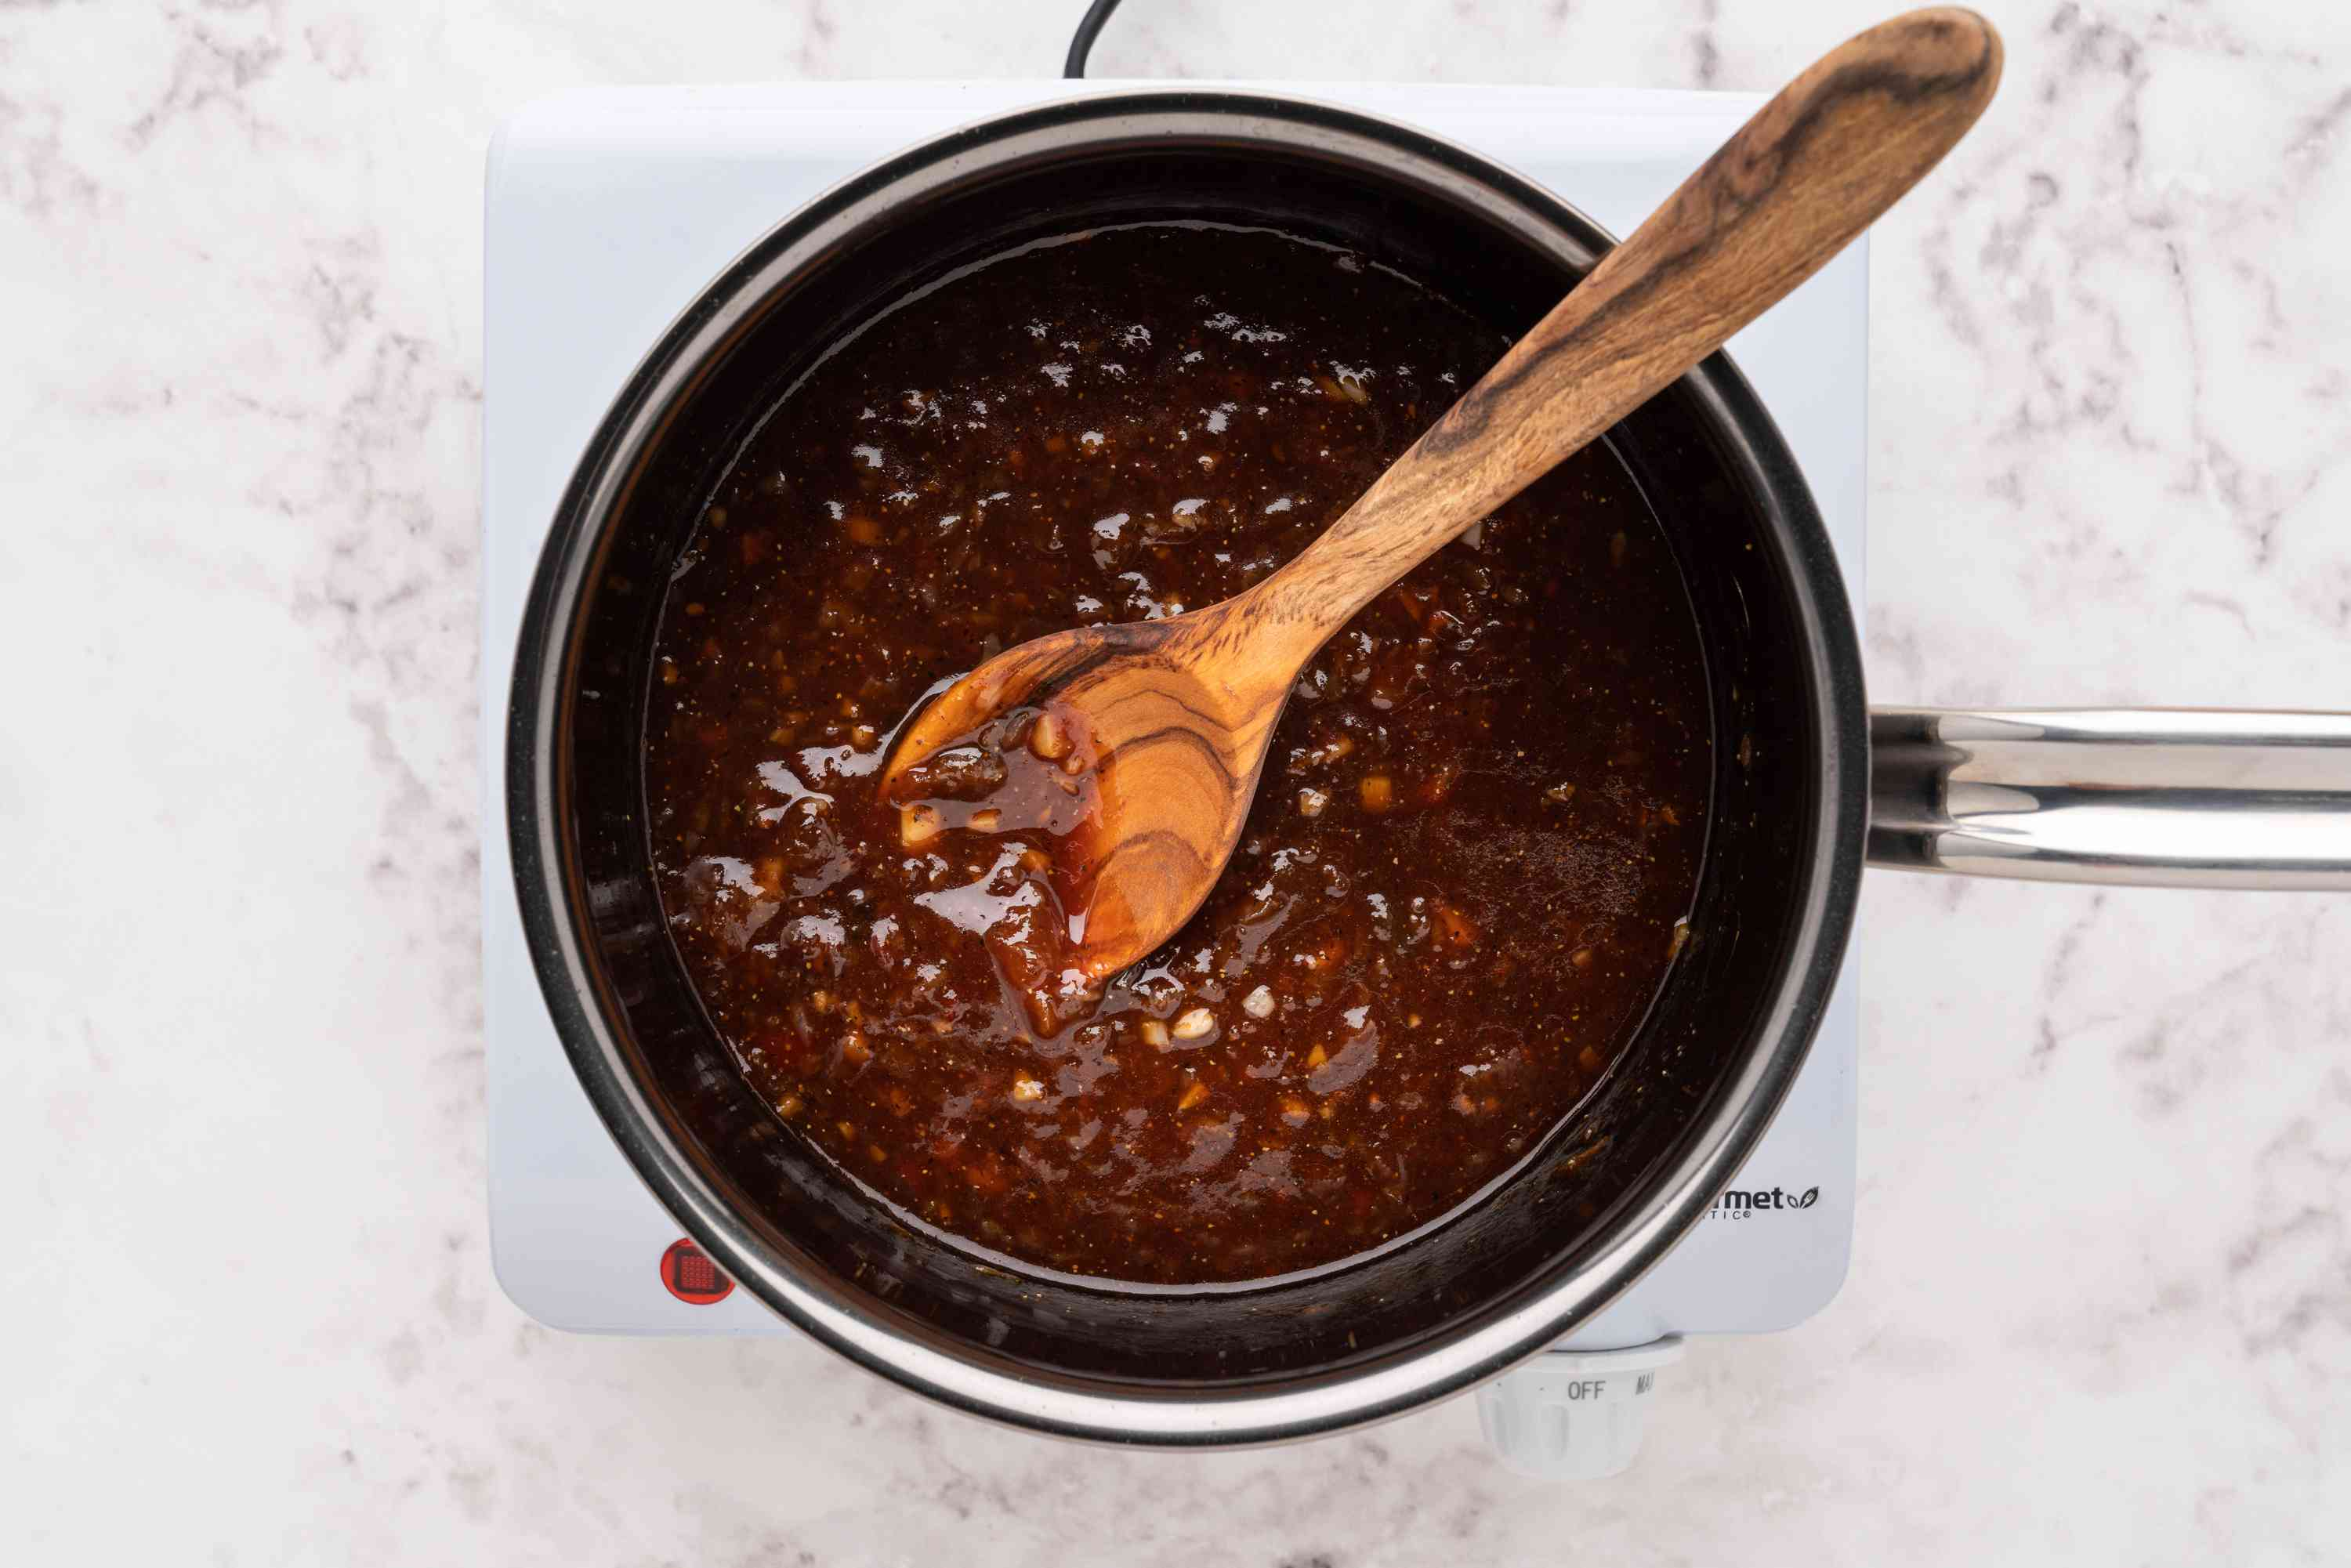 apricot chili glaze cooking in a saucepan